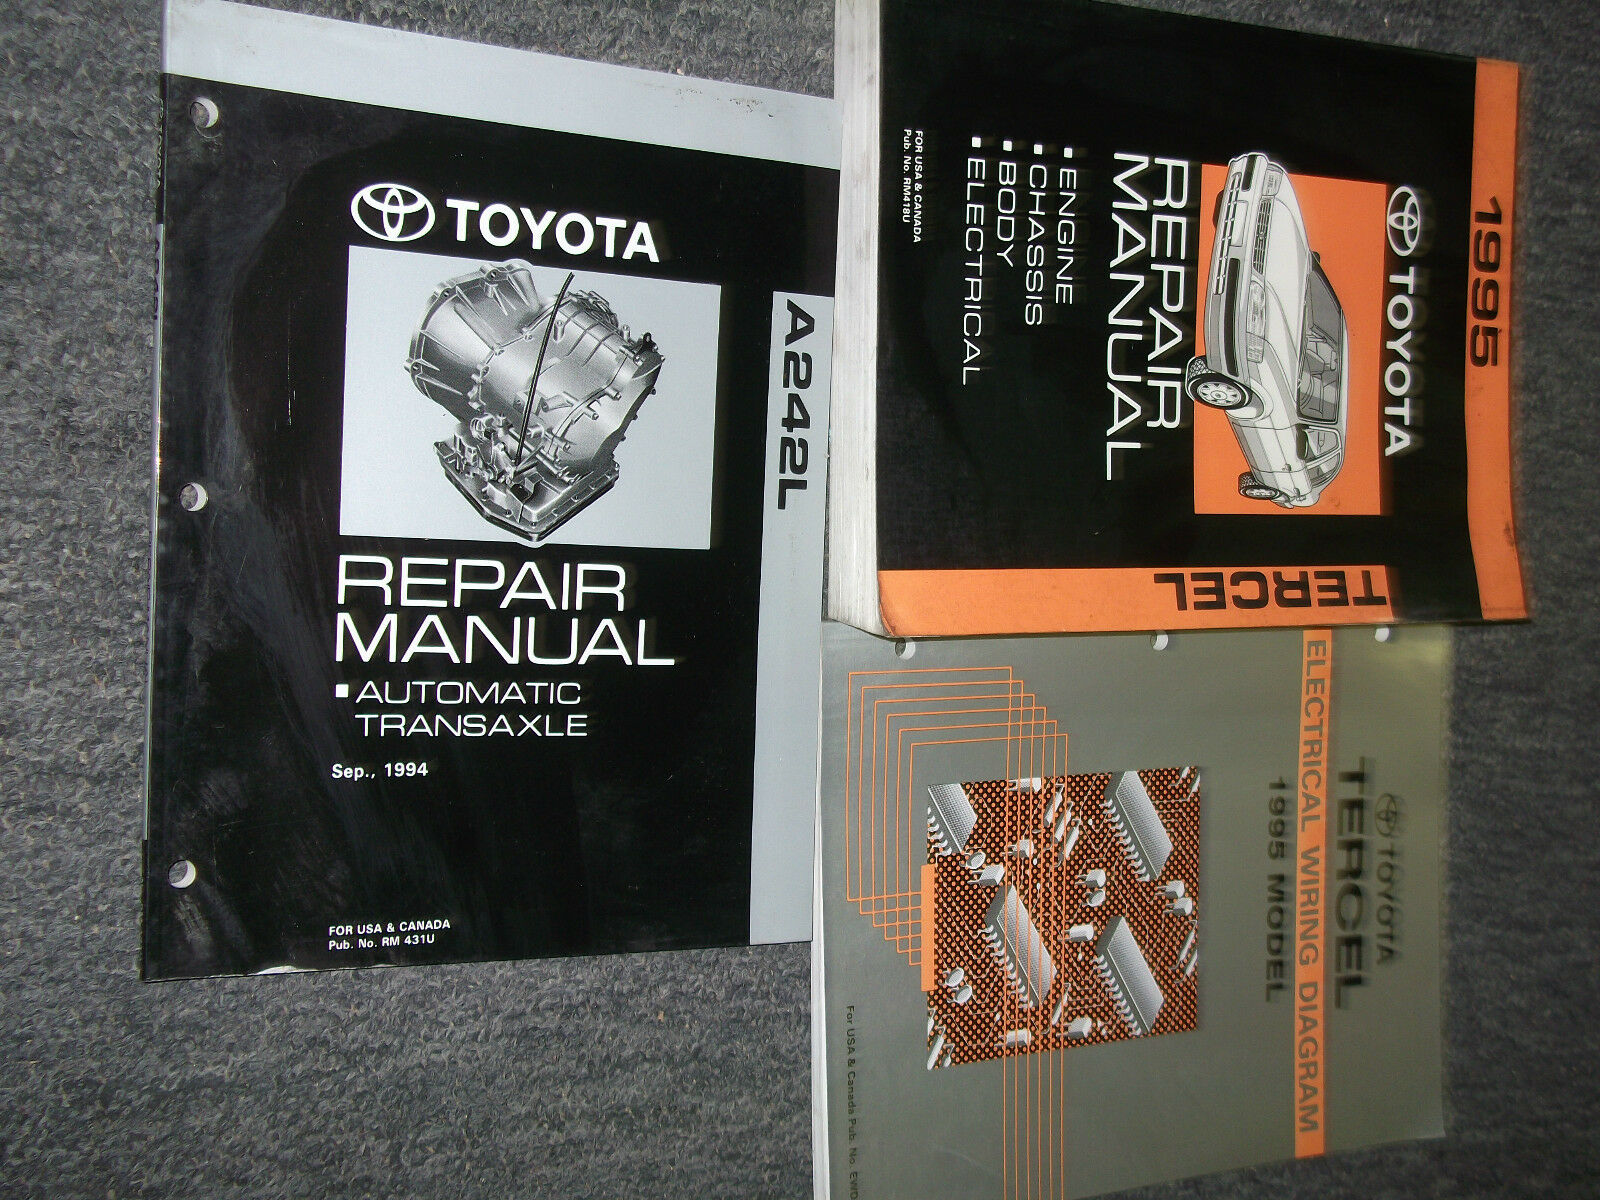 1995 Toyota Tercel Service Shop Repair Manual Set W Ewd Trans Electrical Diagram 1 Of 6only Available